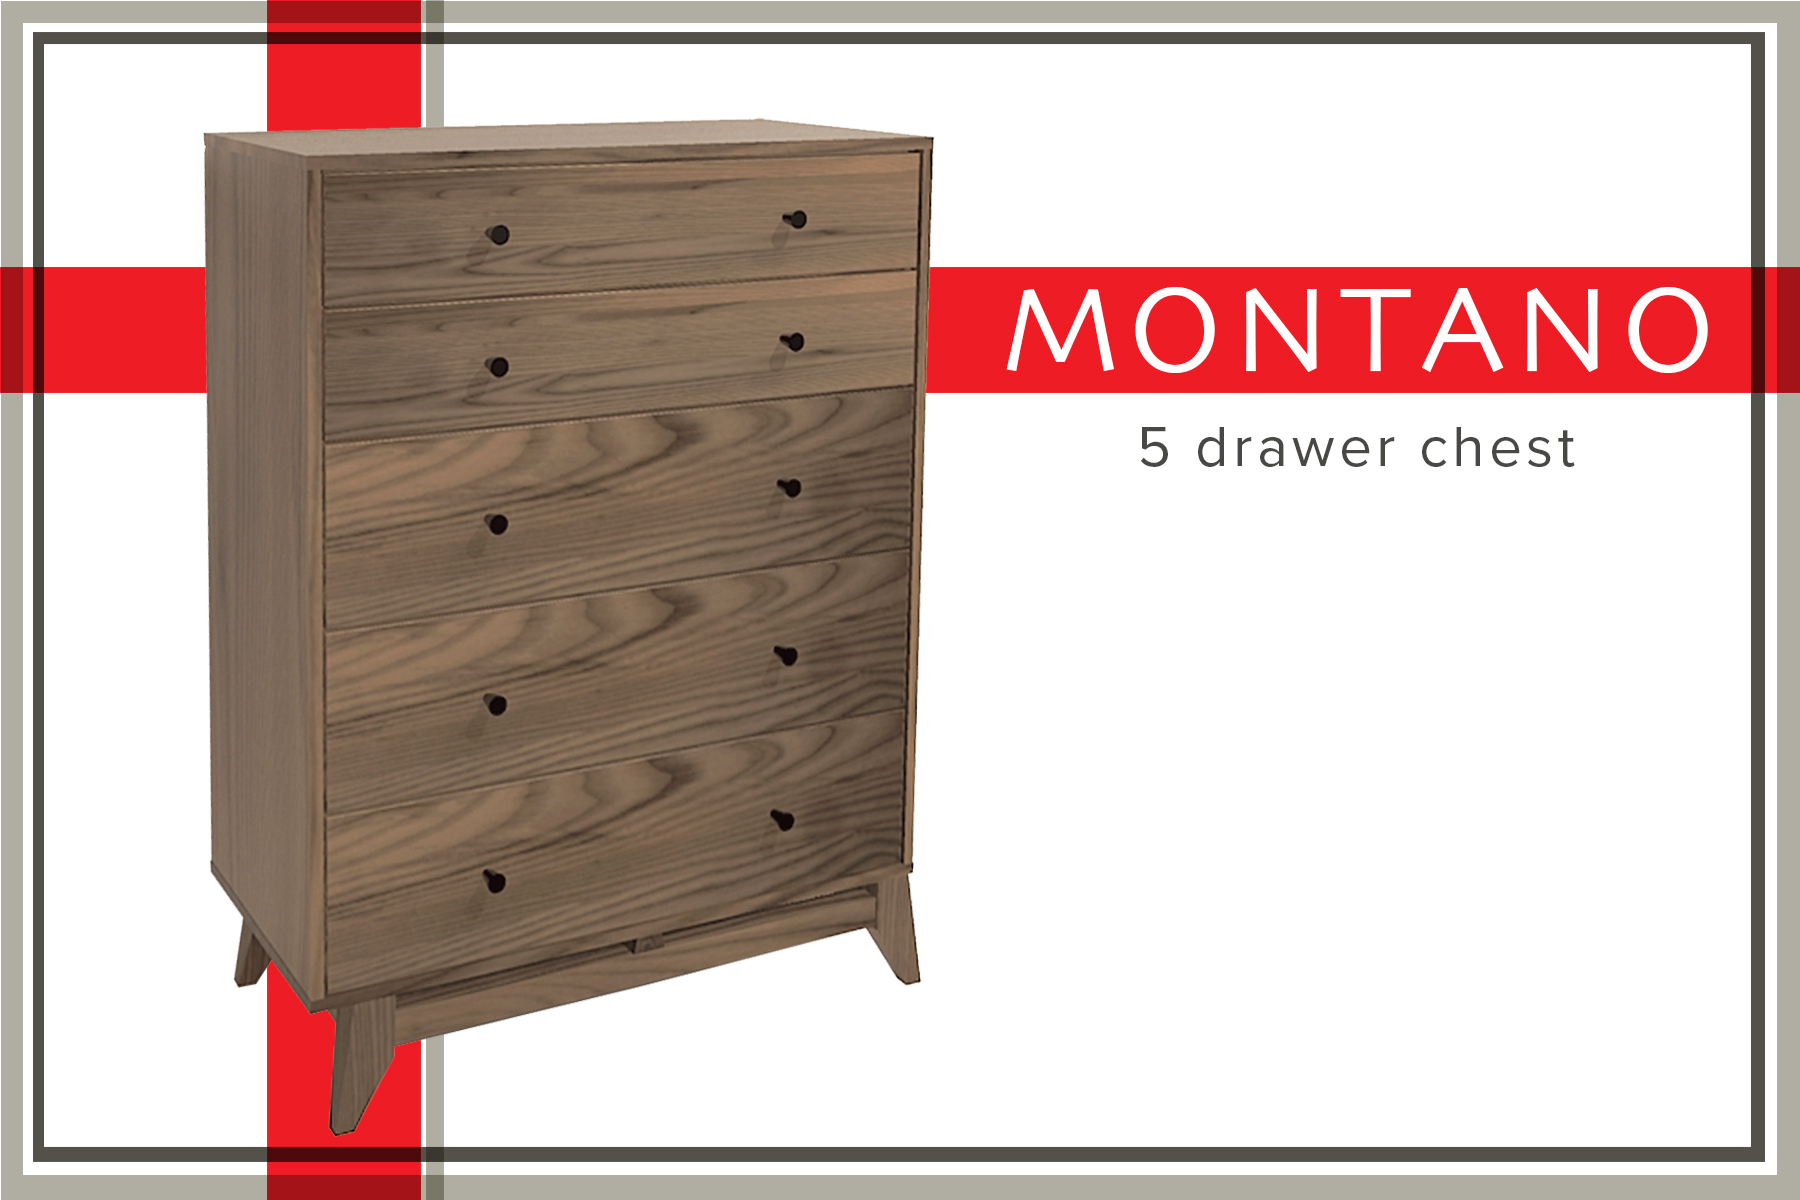 Montano 5 drawer chest